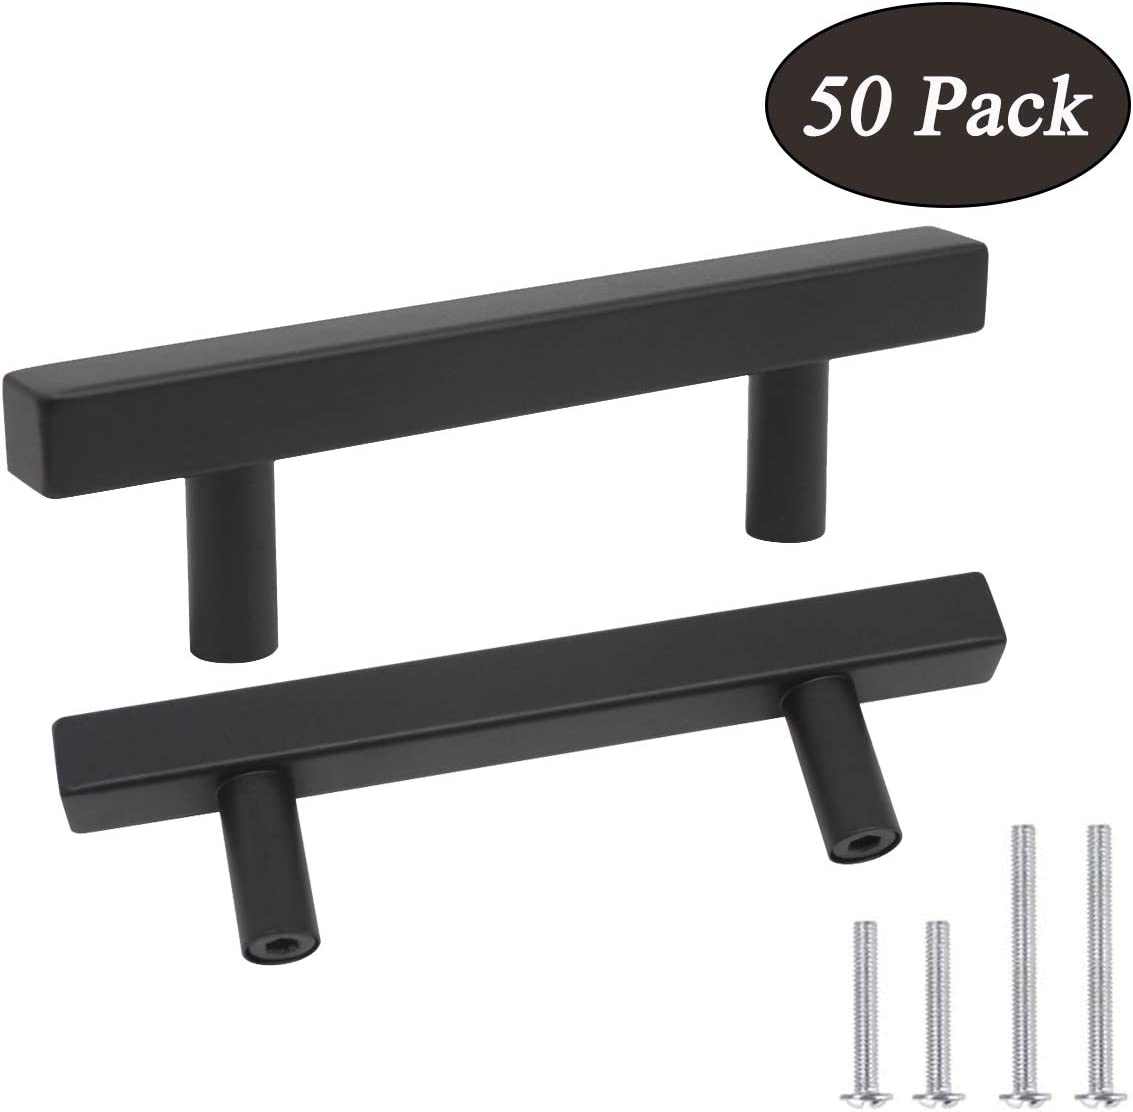 Probrico Cabinet Handles-Pack of 50 Black 3inch (76mm) Hole Centers Square T Bar Kitchen Cabinet Handles Drawer Pulls for Kitchen Furniture Hardware